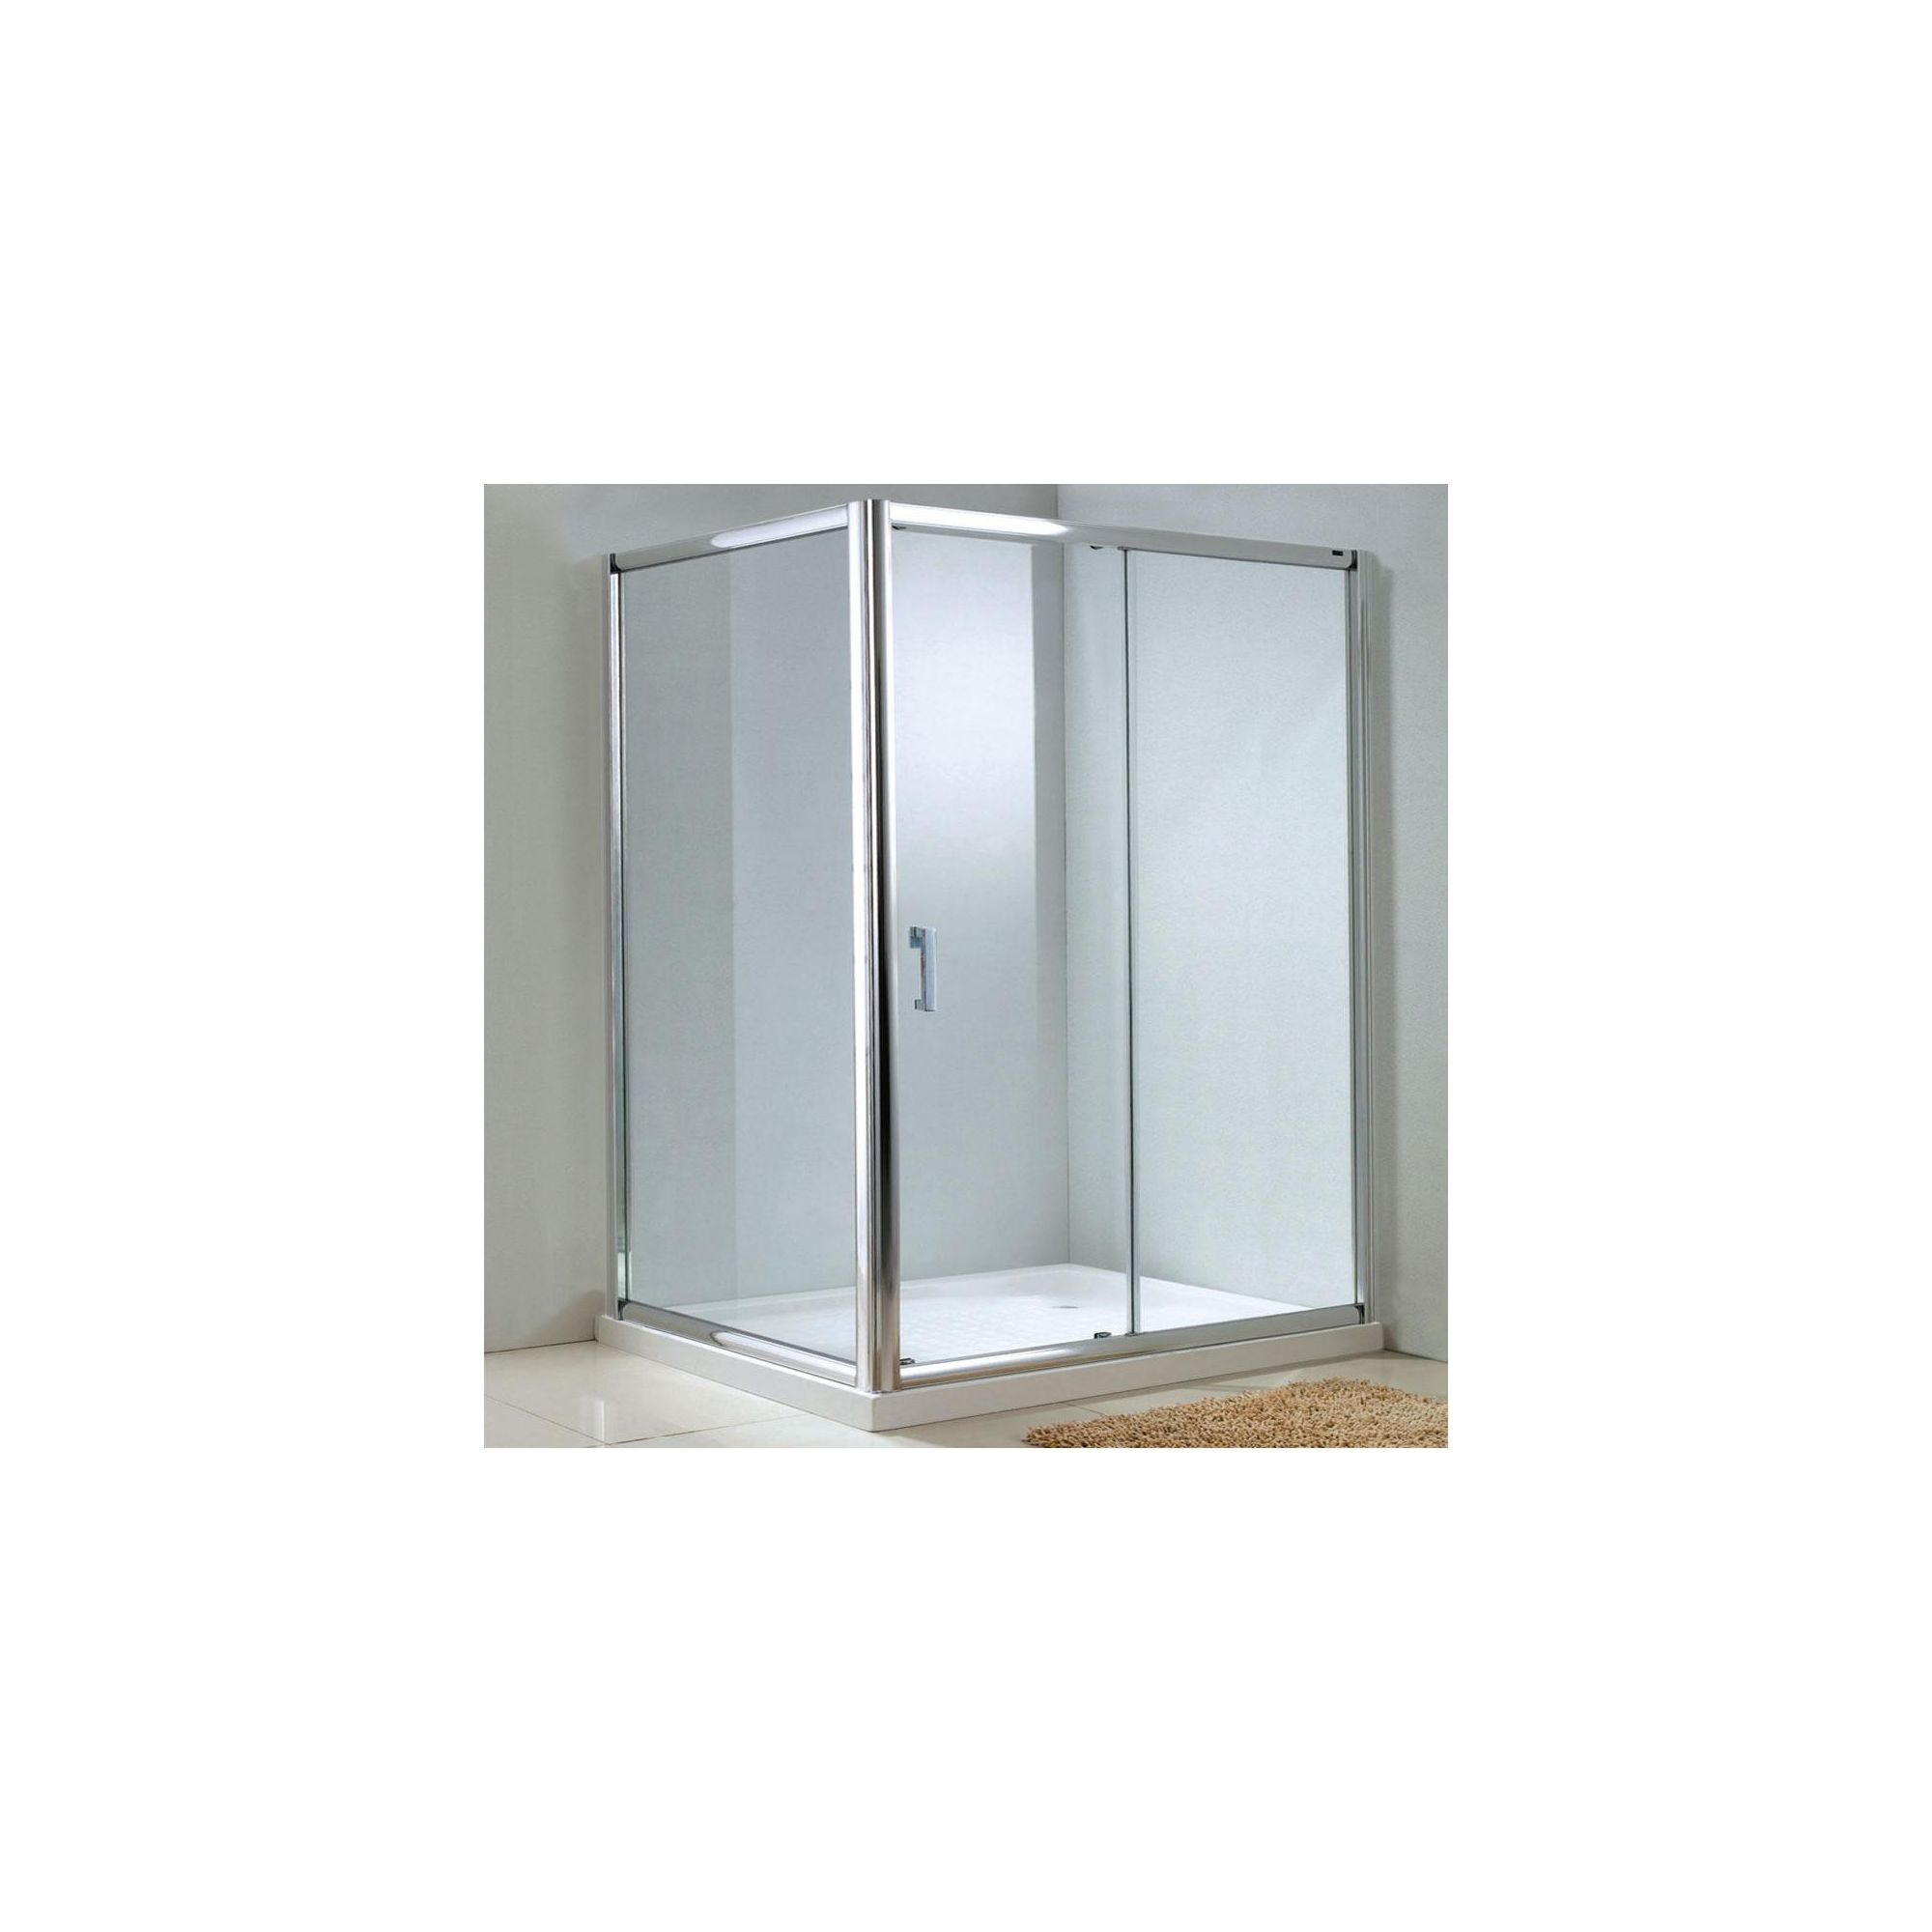 Duchy Style Single Sliding Door Shower Enclosure, 1100mm x 900mm, 6mm Glass, Low Profile Tray at Tesco Direct